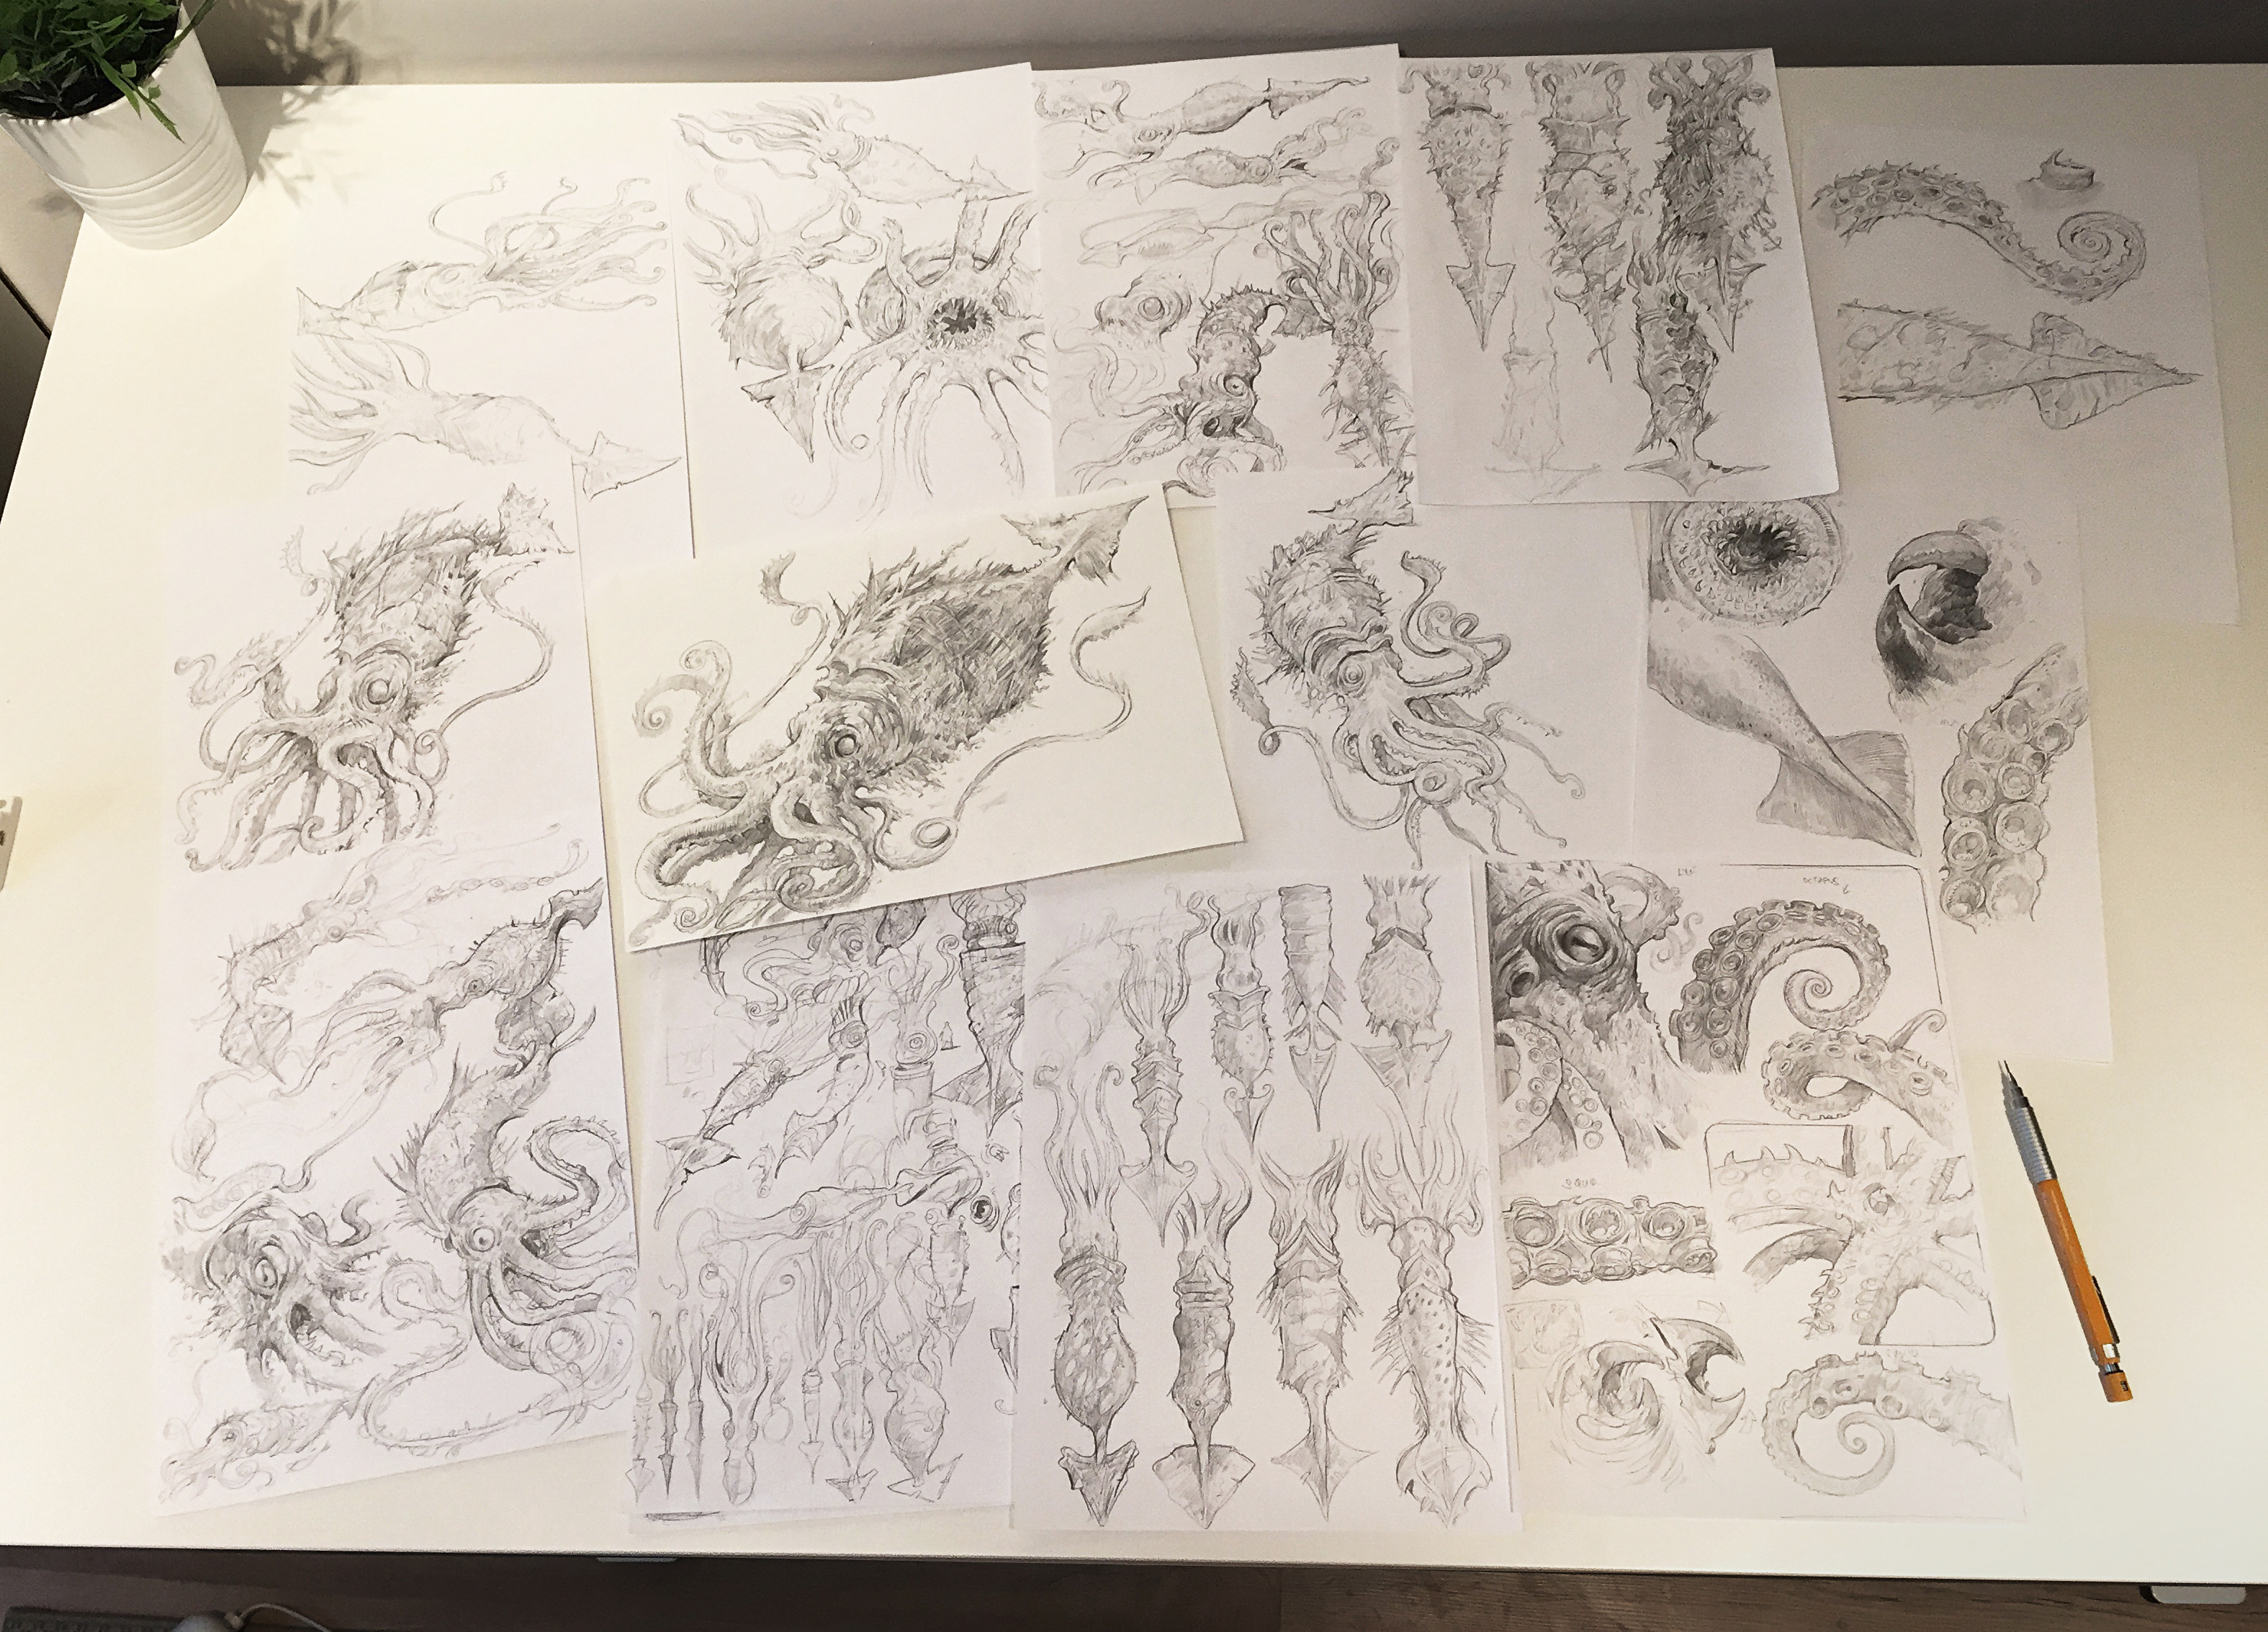 entire sketch collection for the Kraken creation